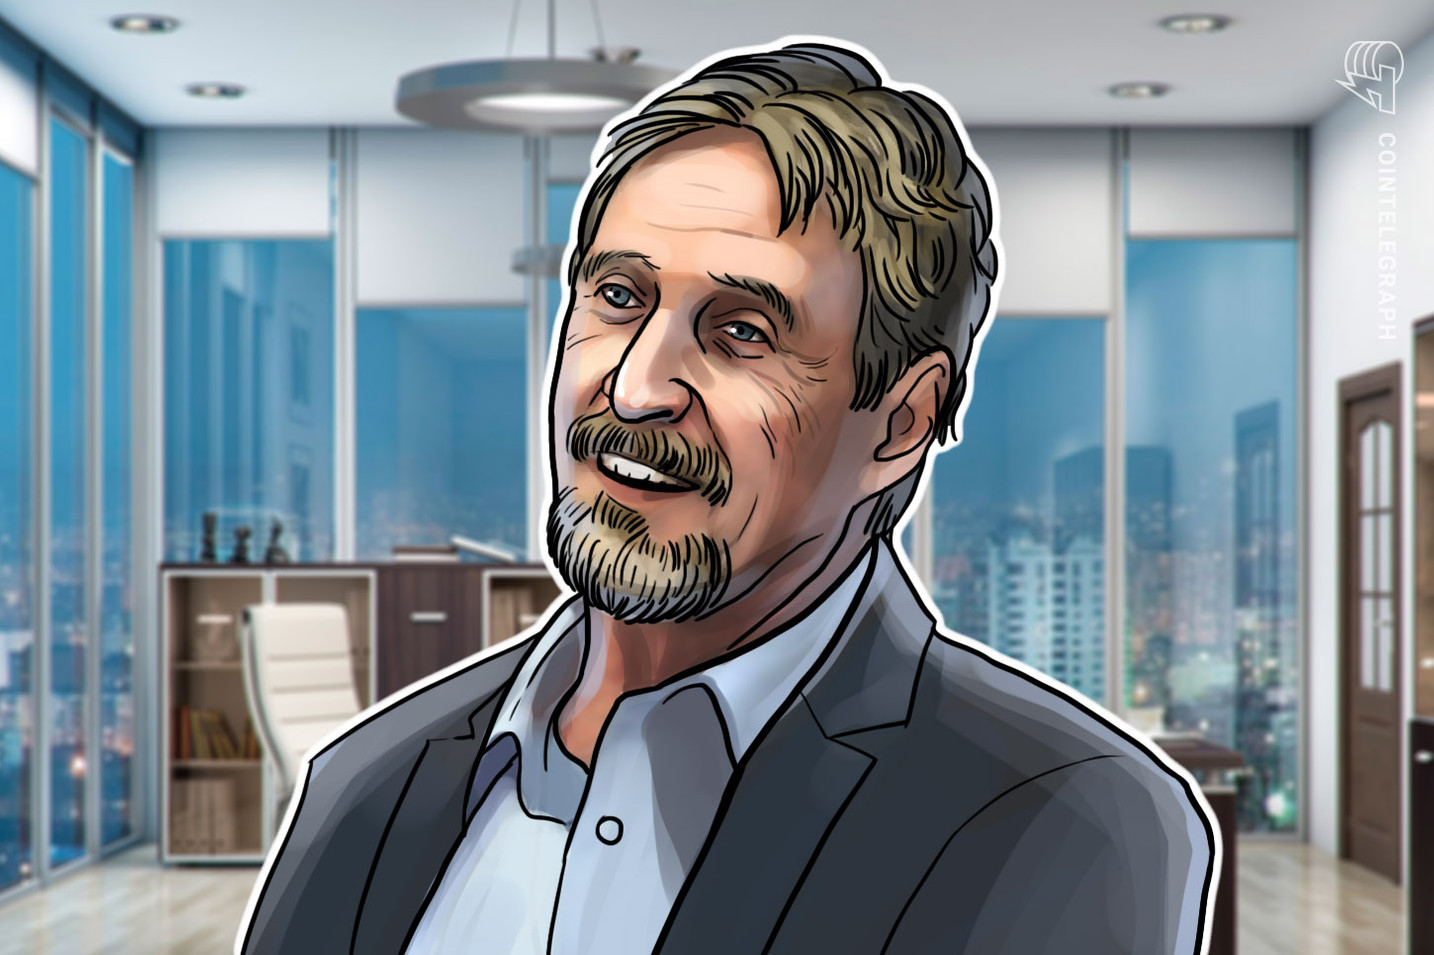 McAfee: Bitcoin's Scarcity Will Trigger Its Price to Hit $1M in 2020